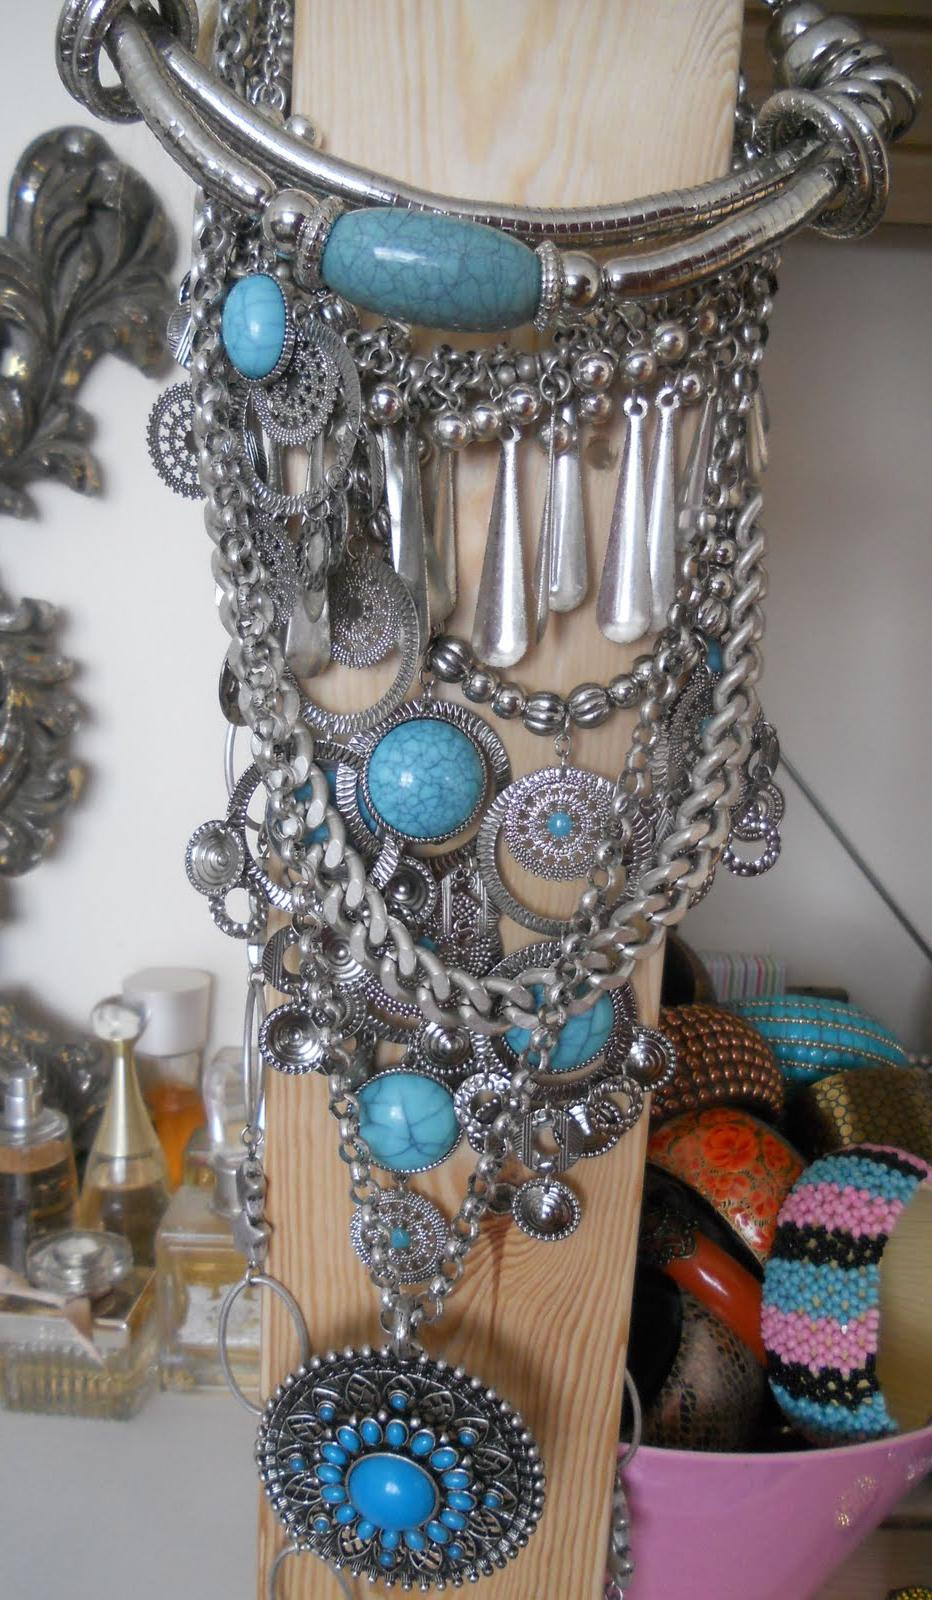 Turquoise and silver jewelry.